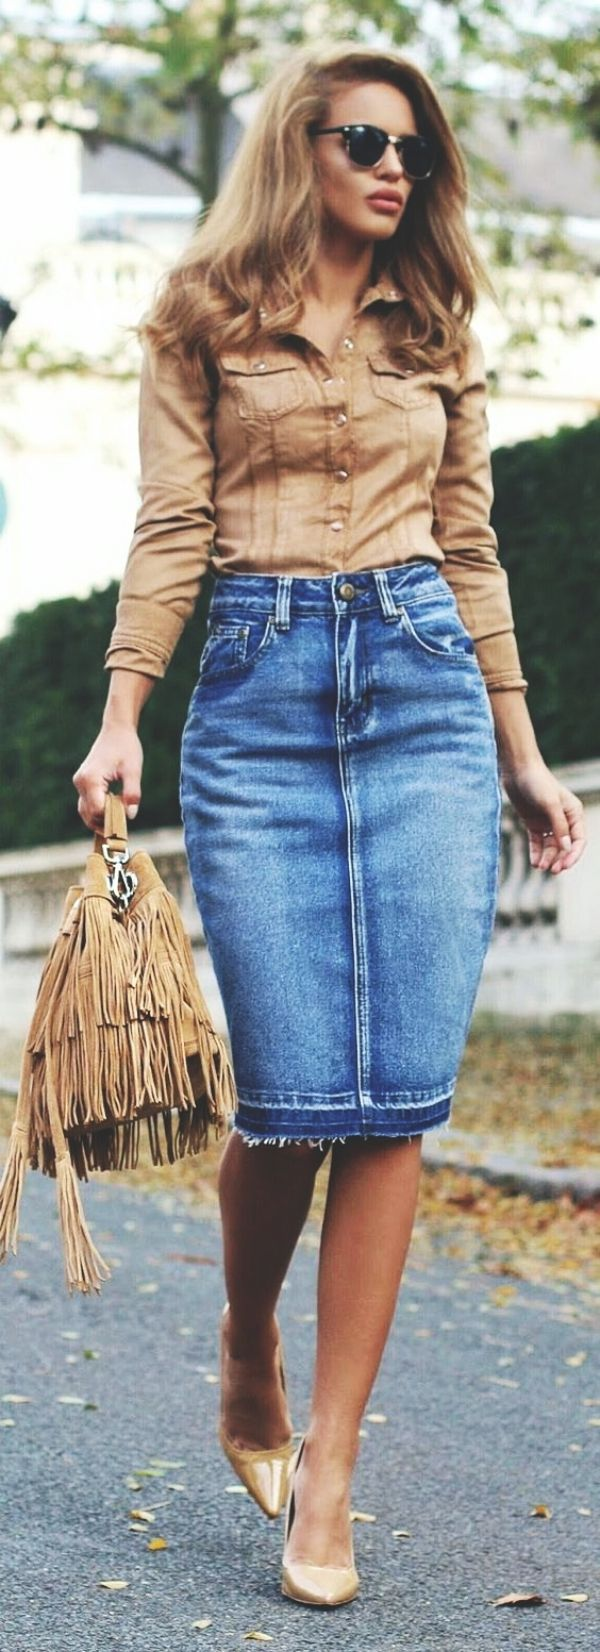 Best 25+ Spring work outfits ideas on Pinterest | Teaching outfits ...